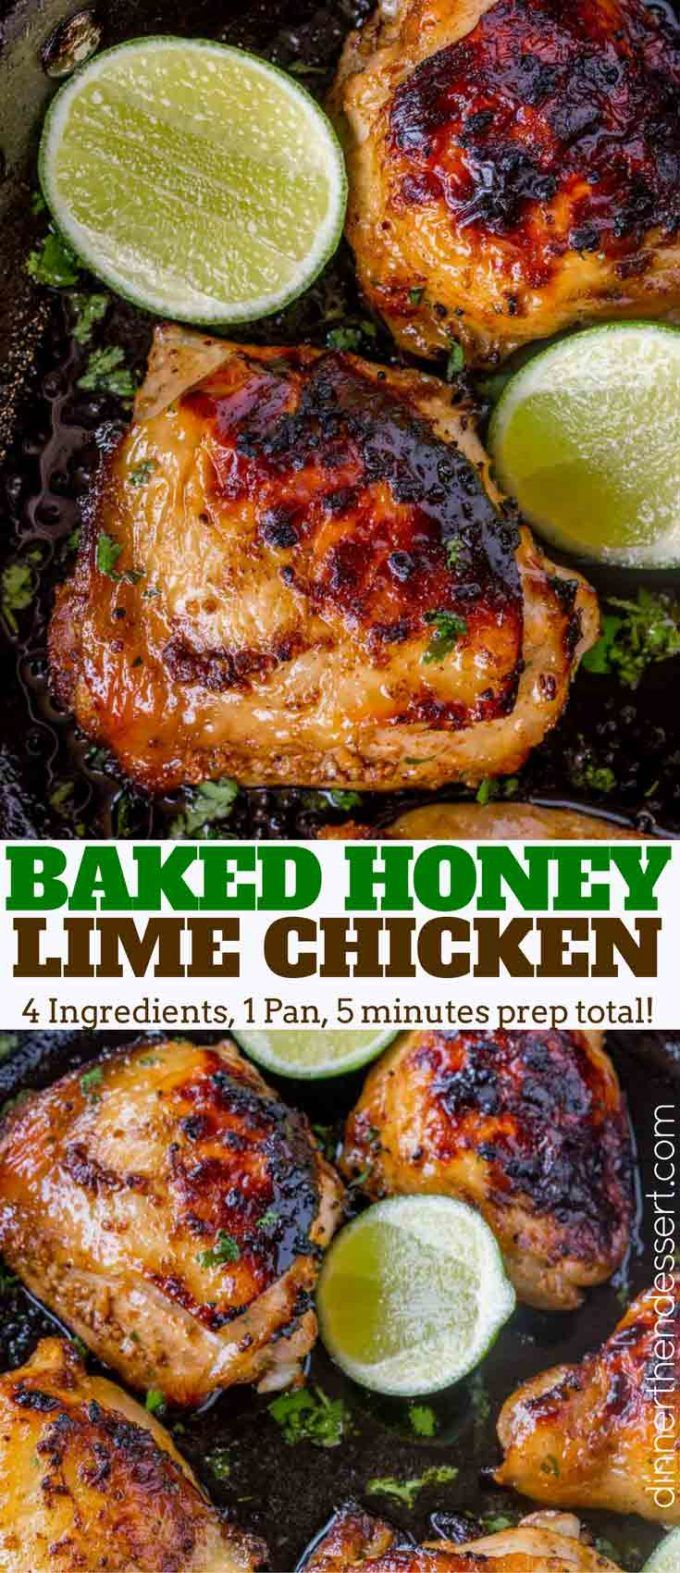 Baked Honey Lime Chicken with just 4 total ingredients browned then baked in the same skillet and the results are crispy, citrusy, sweet and tender. Baked Honey Lime Chicken Baked Honey Lime Chicken is packed with flavor with practically no effort whatsoever and just a small handful of ingredients. This dish is one of our …